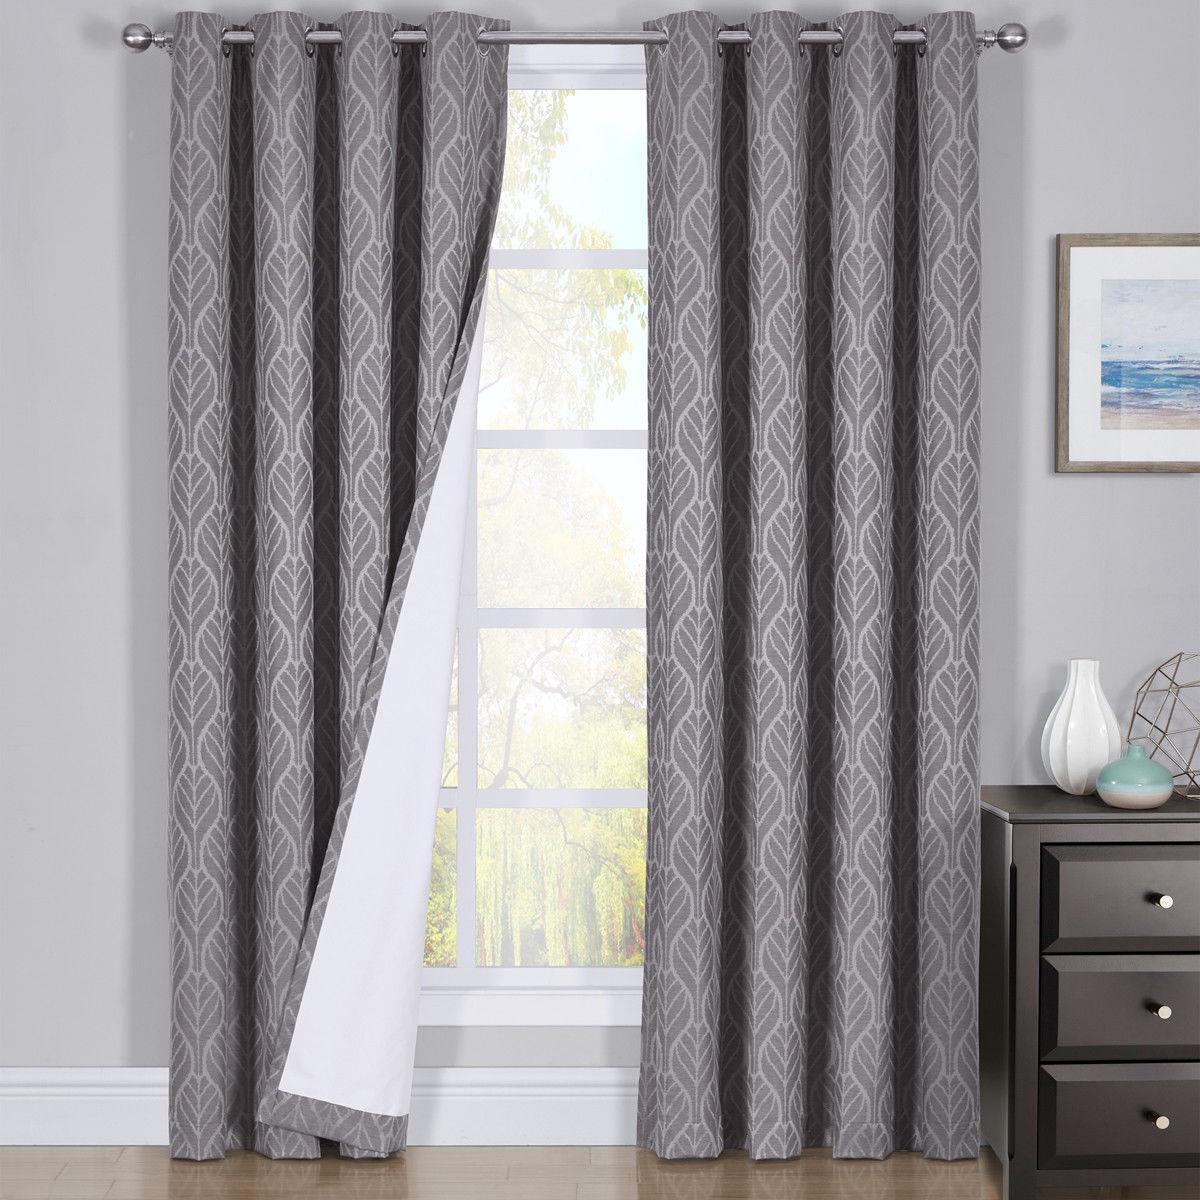 Hilton Blackout Curtains Panels Jacquard Thermal Insulated Pairs With Regard To Thermal Insulated Blackout Grommet Top Curtain Panel Pairs (View 16 of 30)